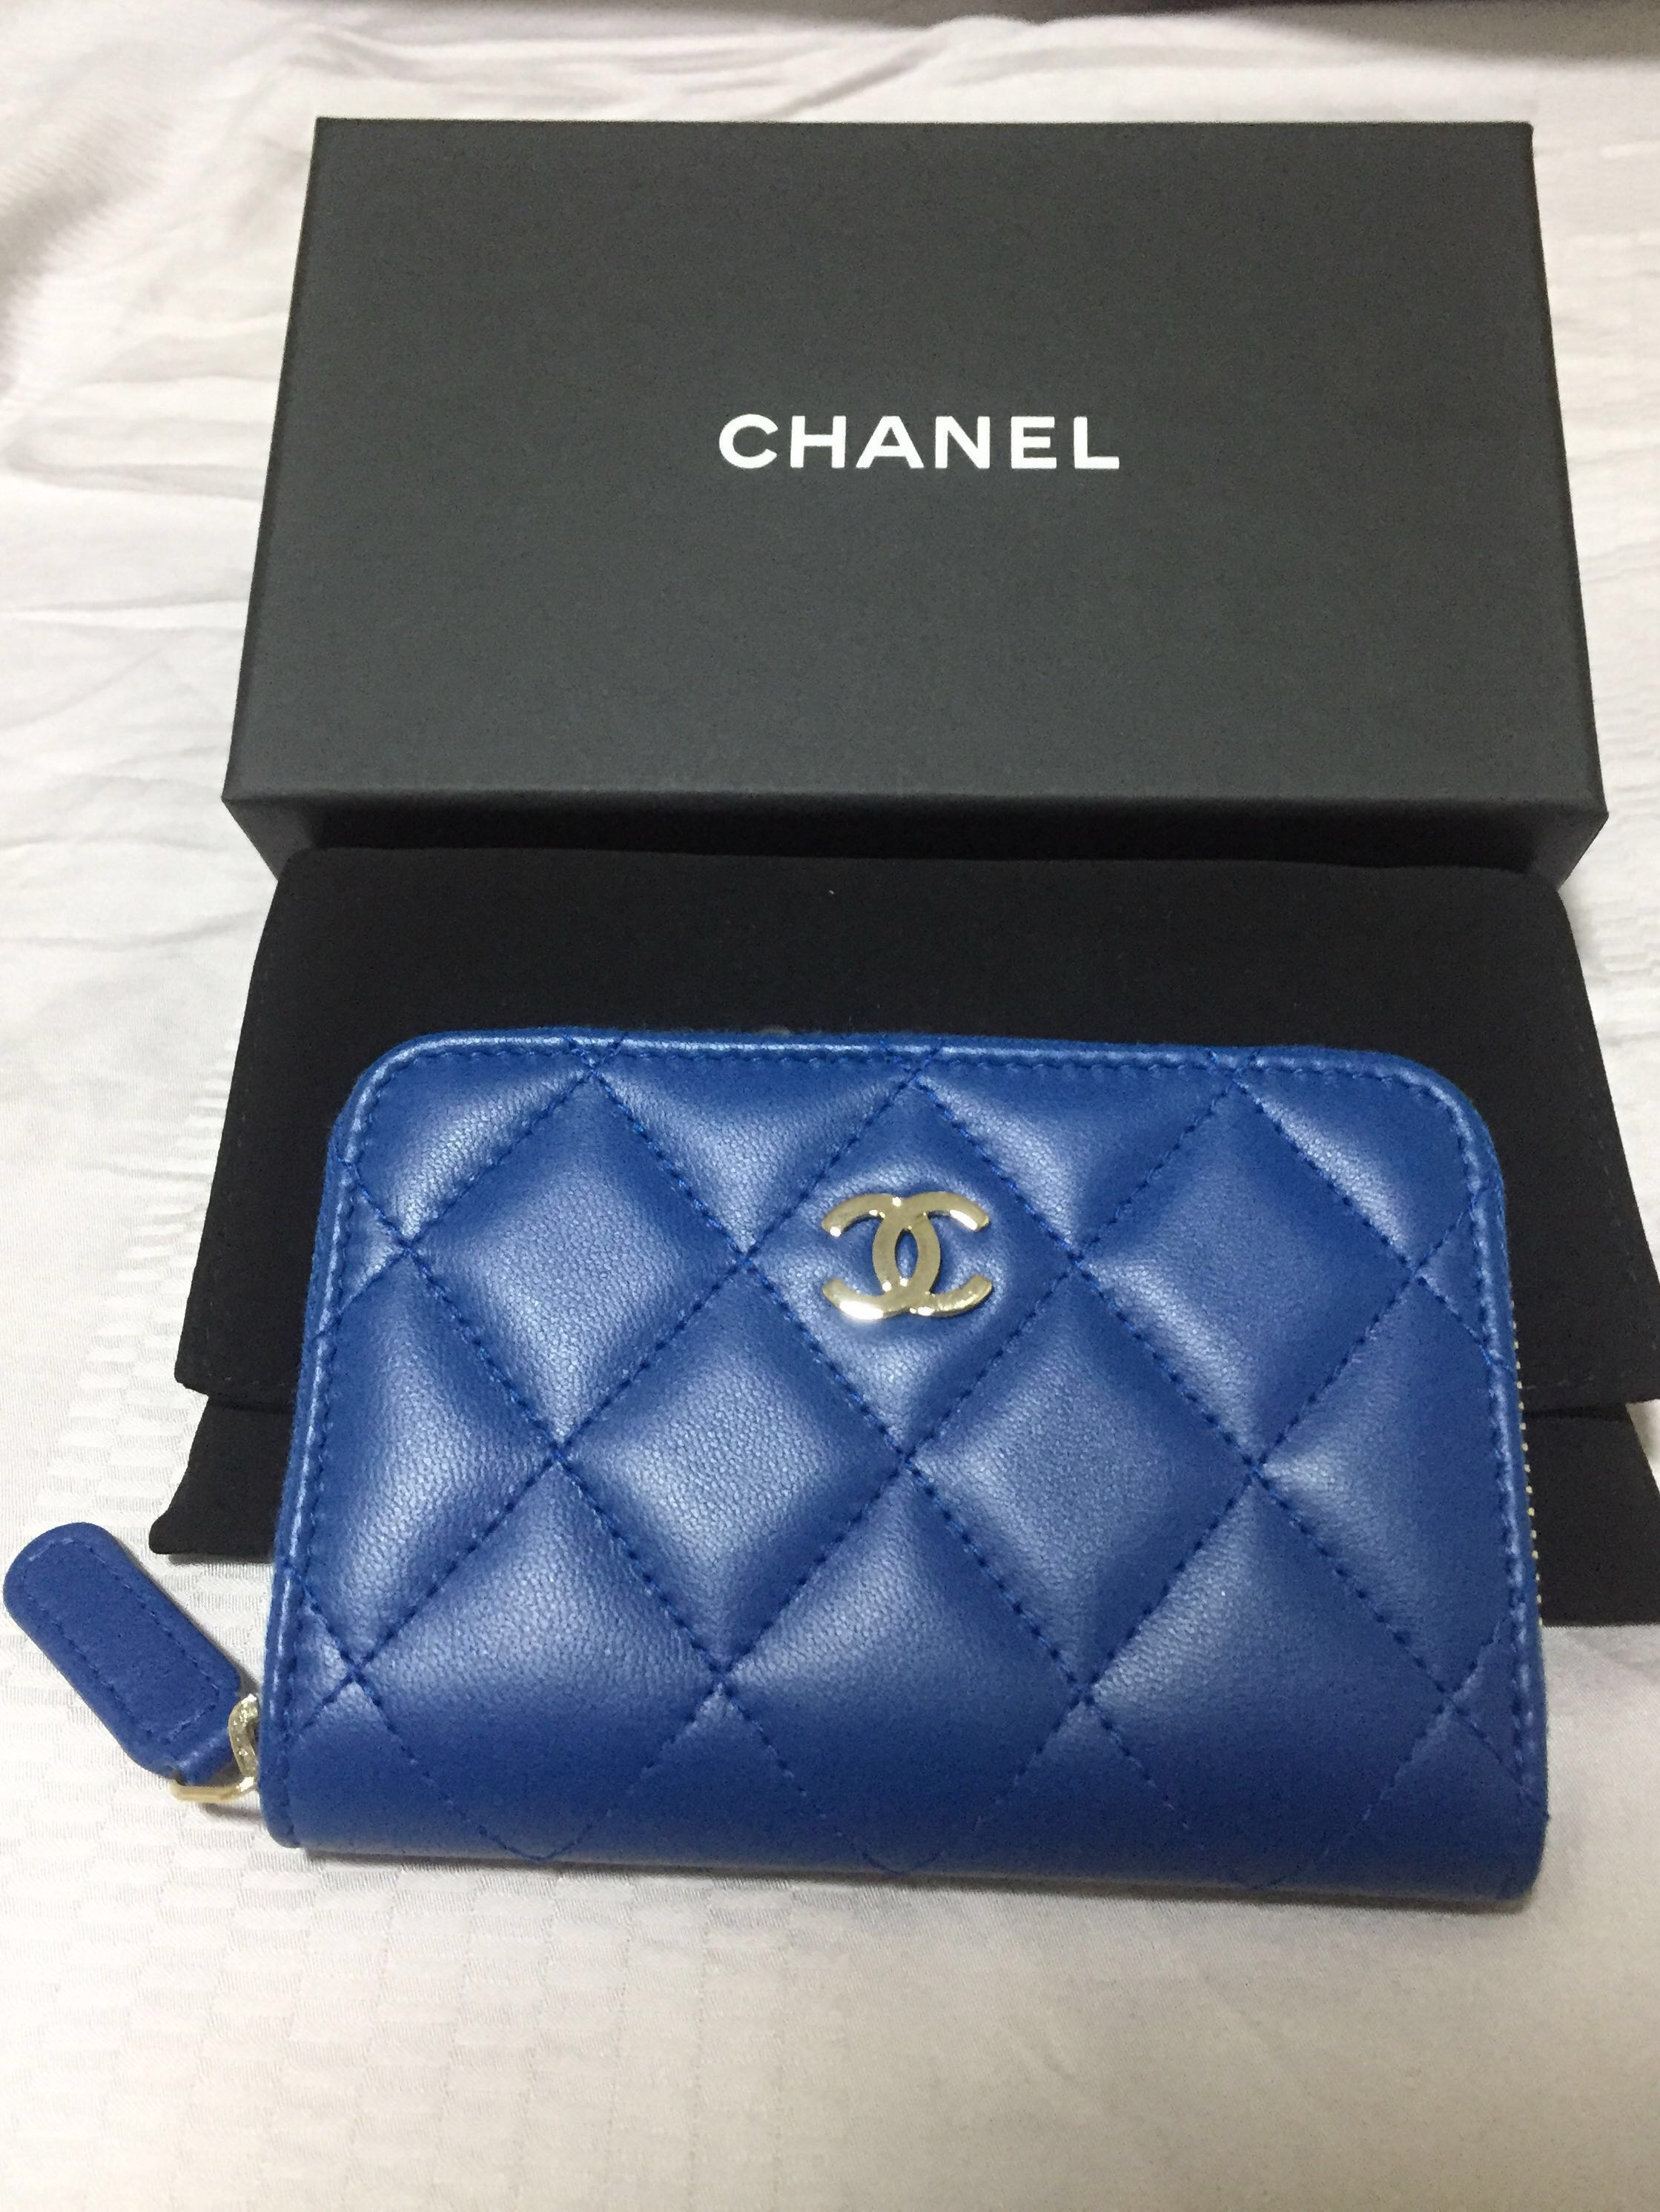 269c264364f7 Chanel O-Coin Purse, Luxury, Bags & Wallets, Wallets on Carousell